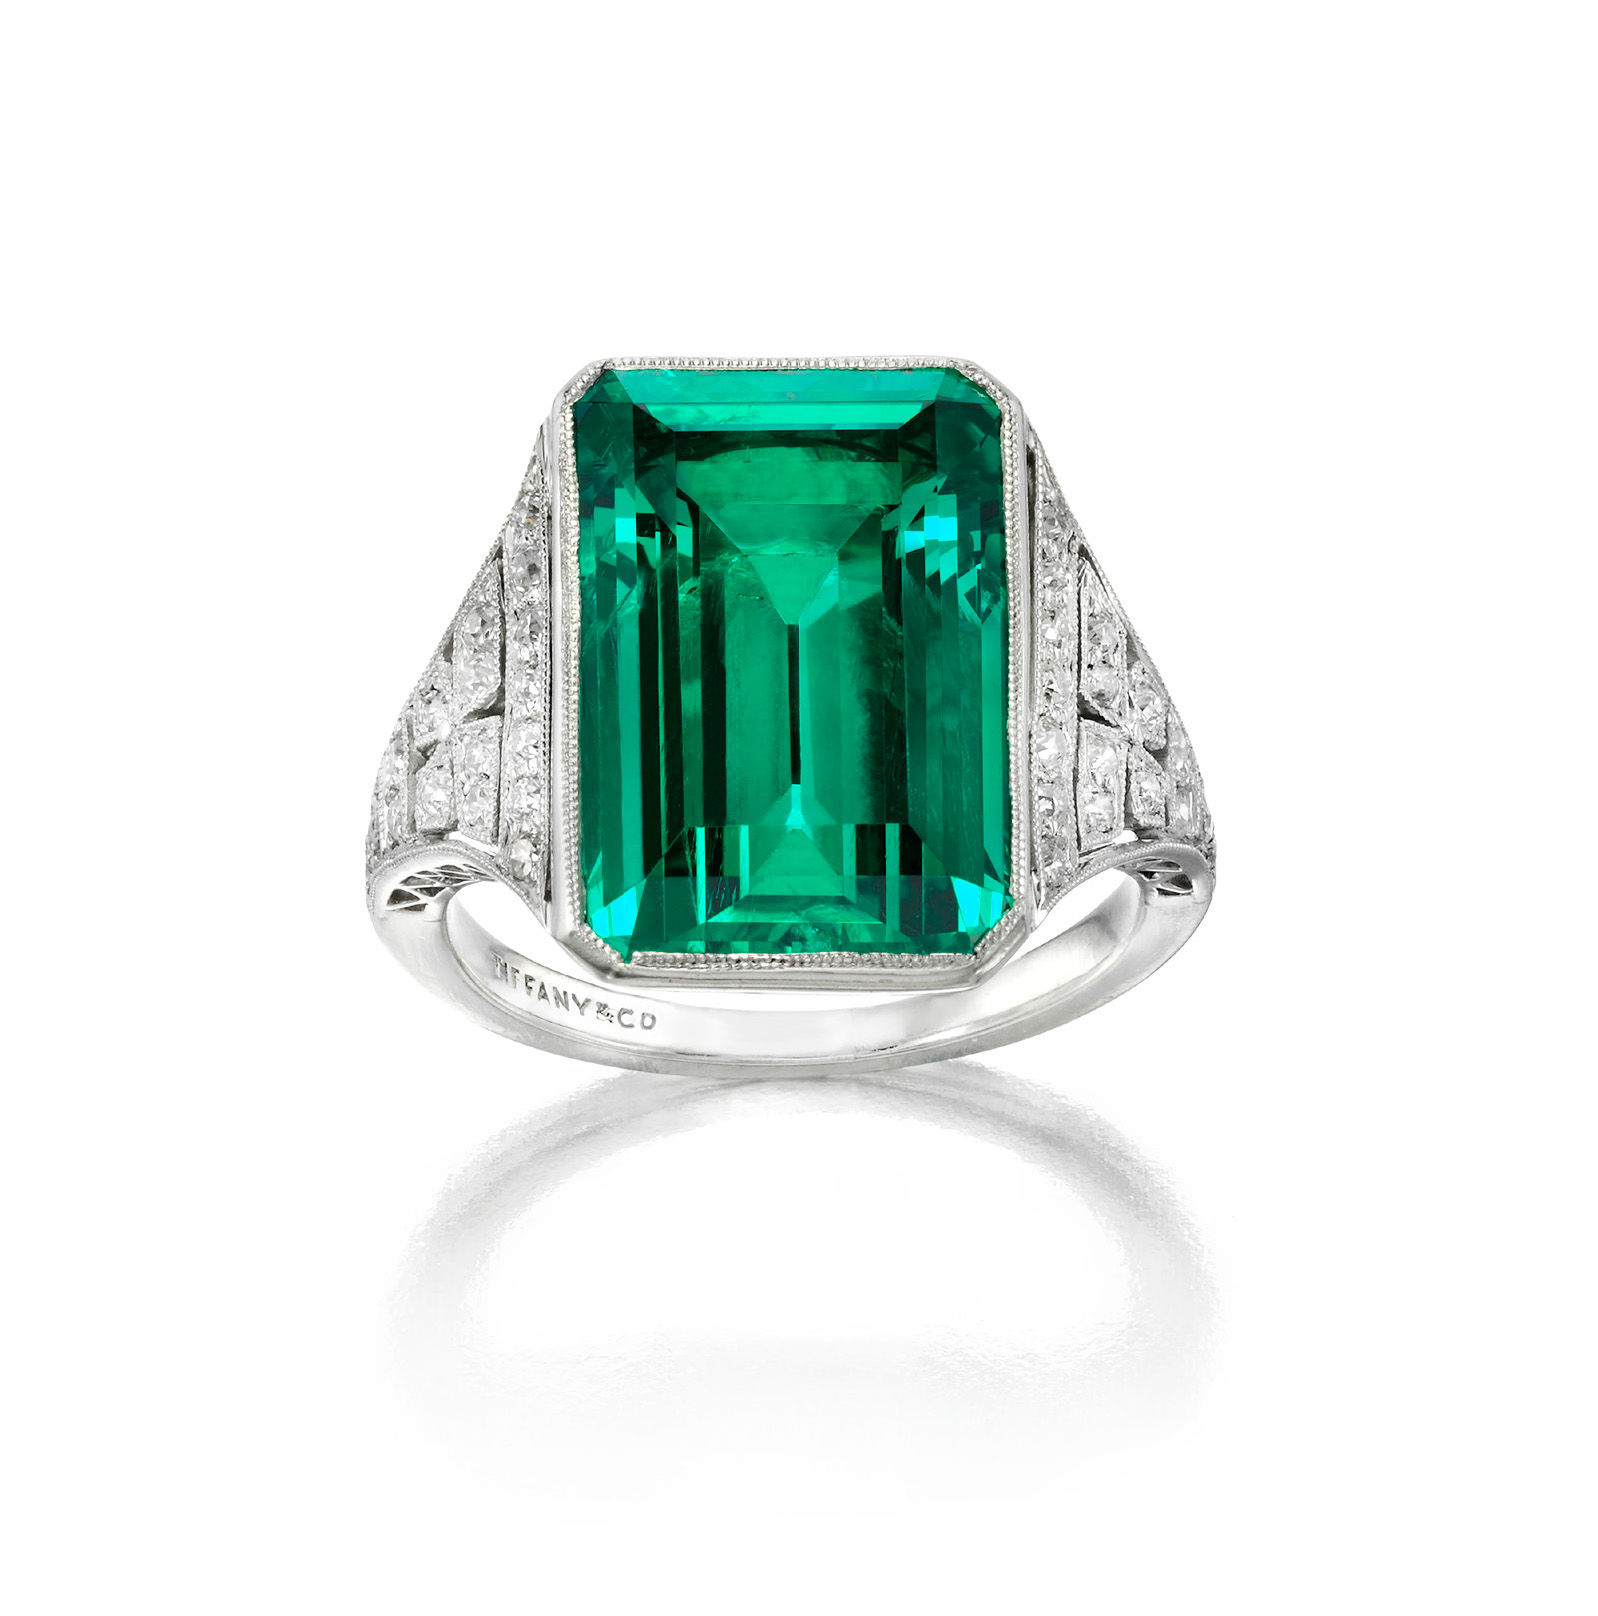 Art deco emerald and diamond Ring by Tiffany & Co., New York, circa 1925, for Helen Hay Whitney. Emerald-cut emerald in a millegrain bezel accented on the sides with old European-cut diamonds in millegrain settings, creating a four-leaf form. Mounted in platinum. 1 emerald, 8.51 carats; 34 diamonds, .50 carat.